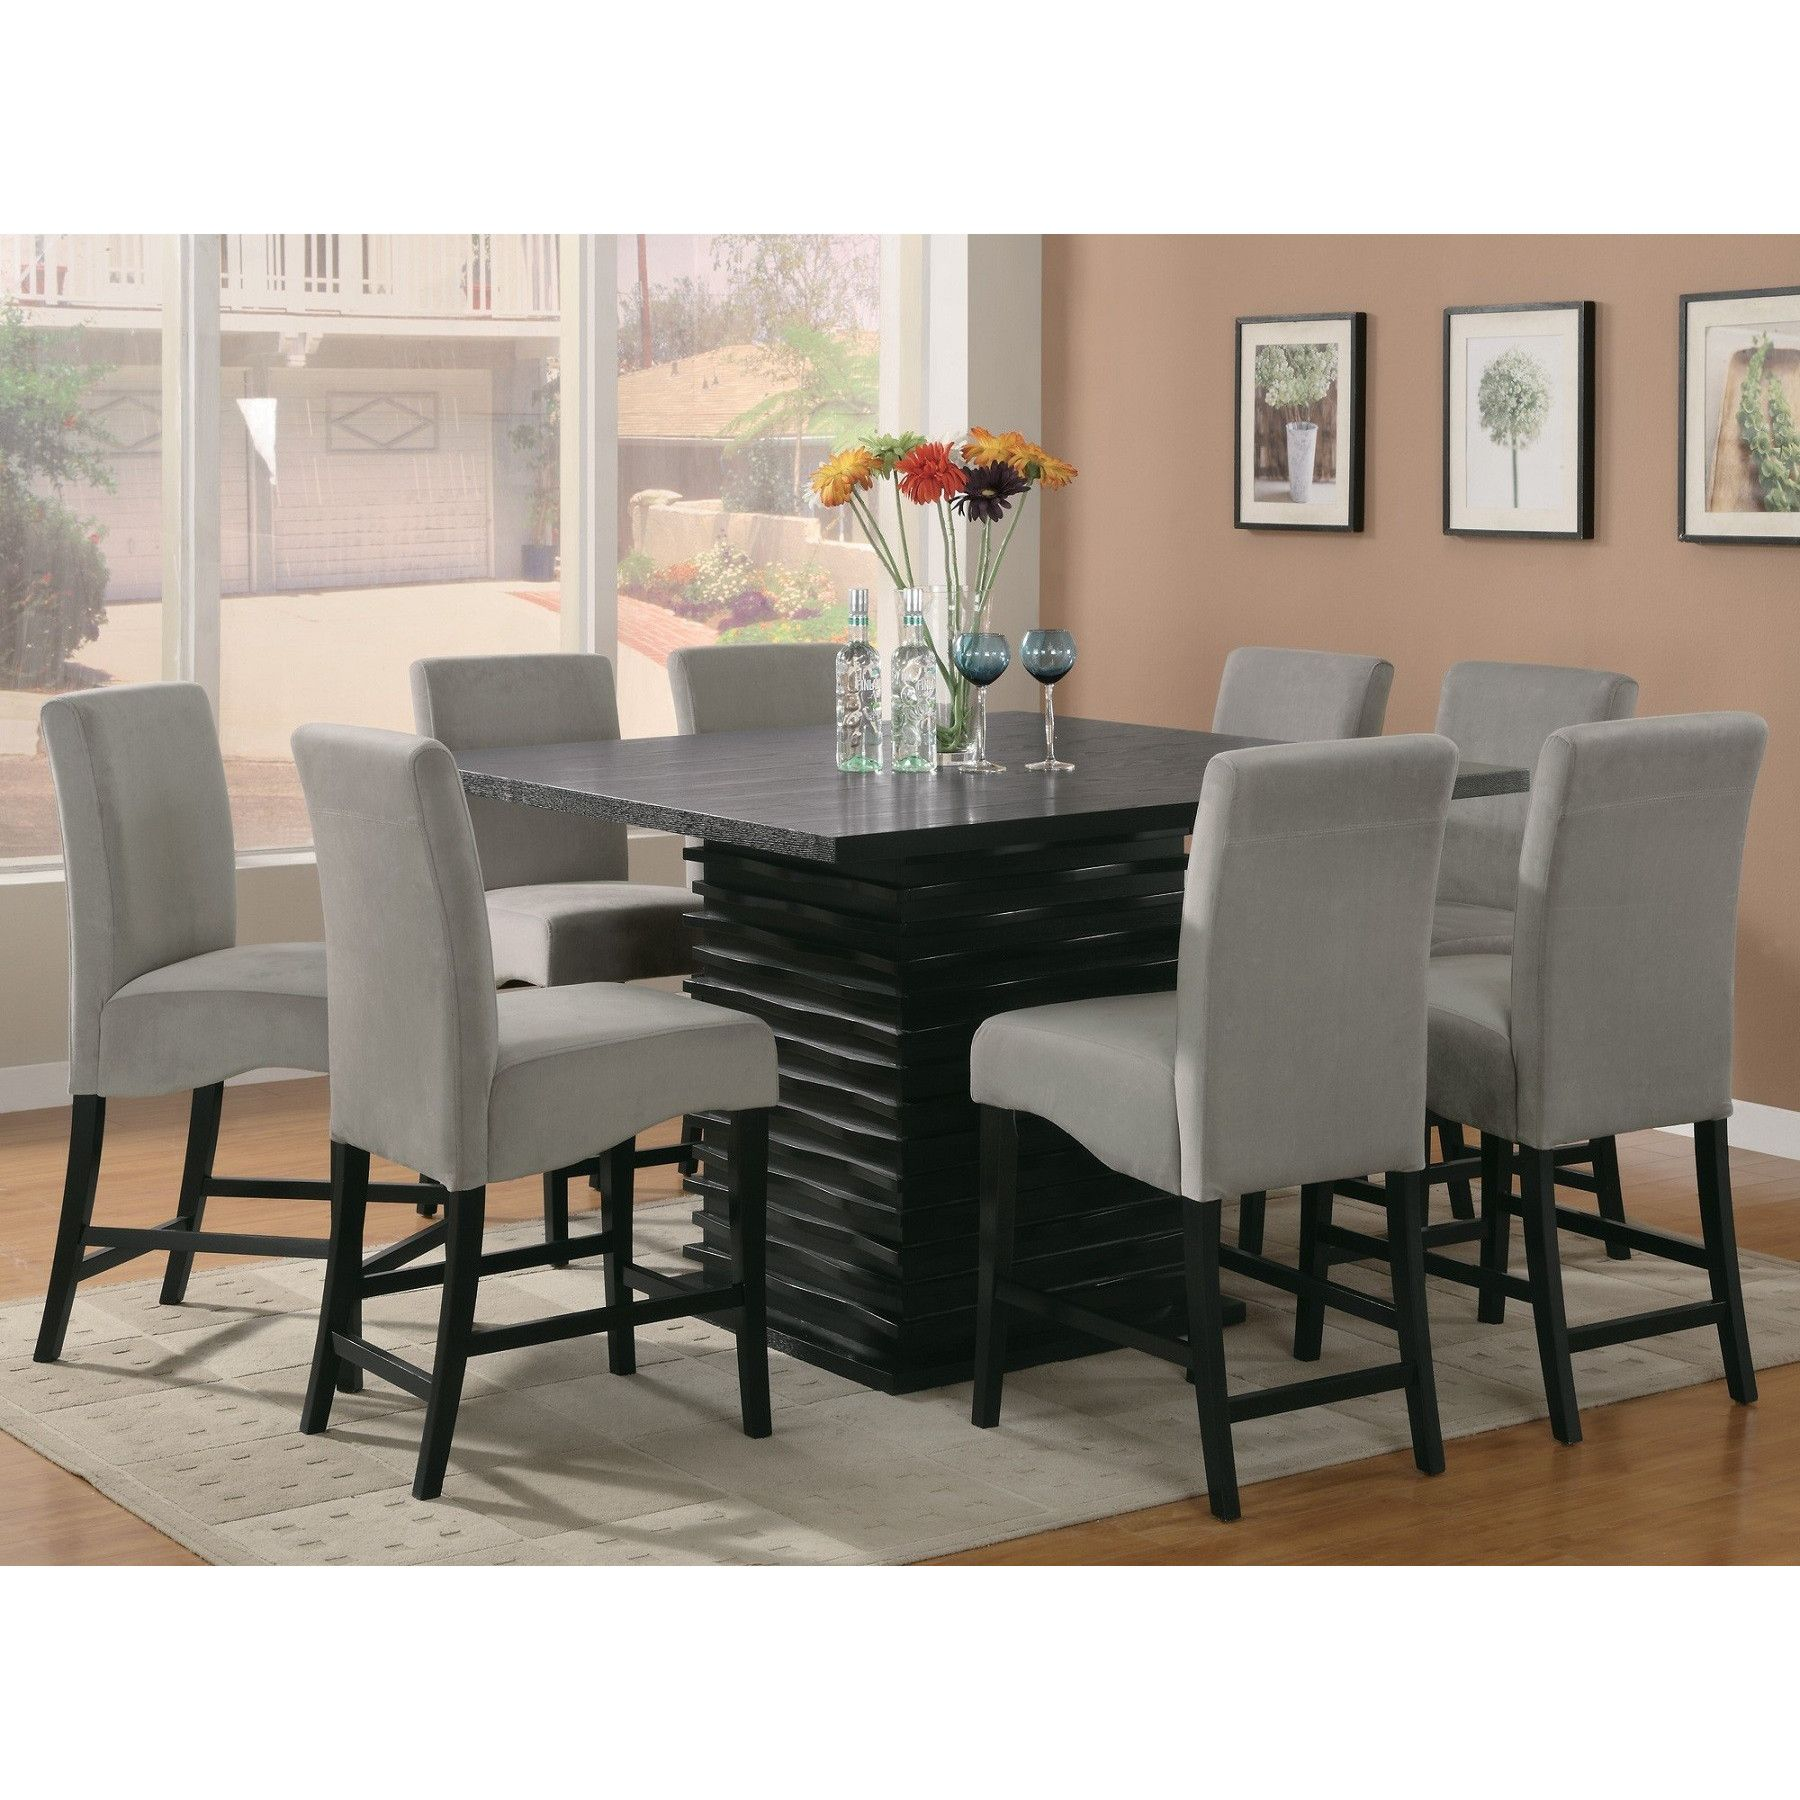 Infini Furnishings Jordan 9 Piece Counter Height Dining Set Enchanting 9 Piece Dining Room Design Ideas